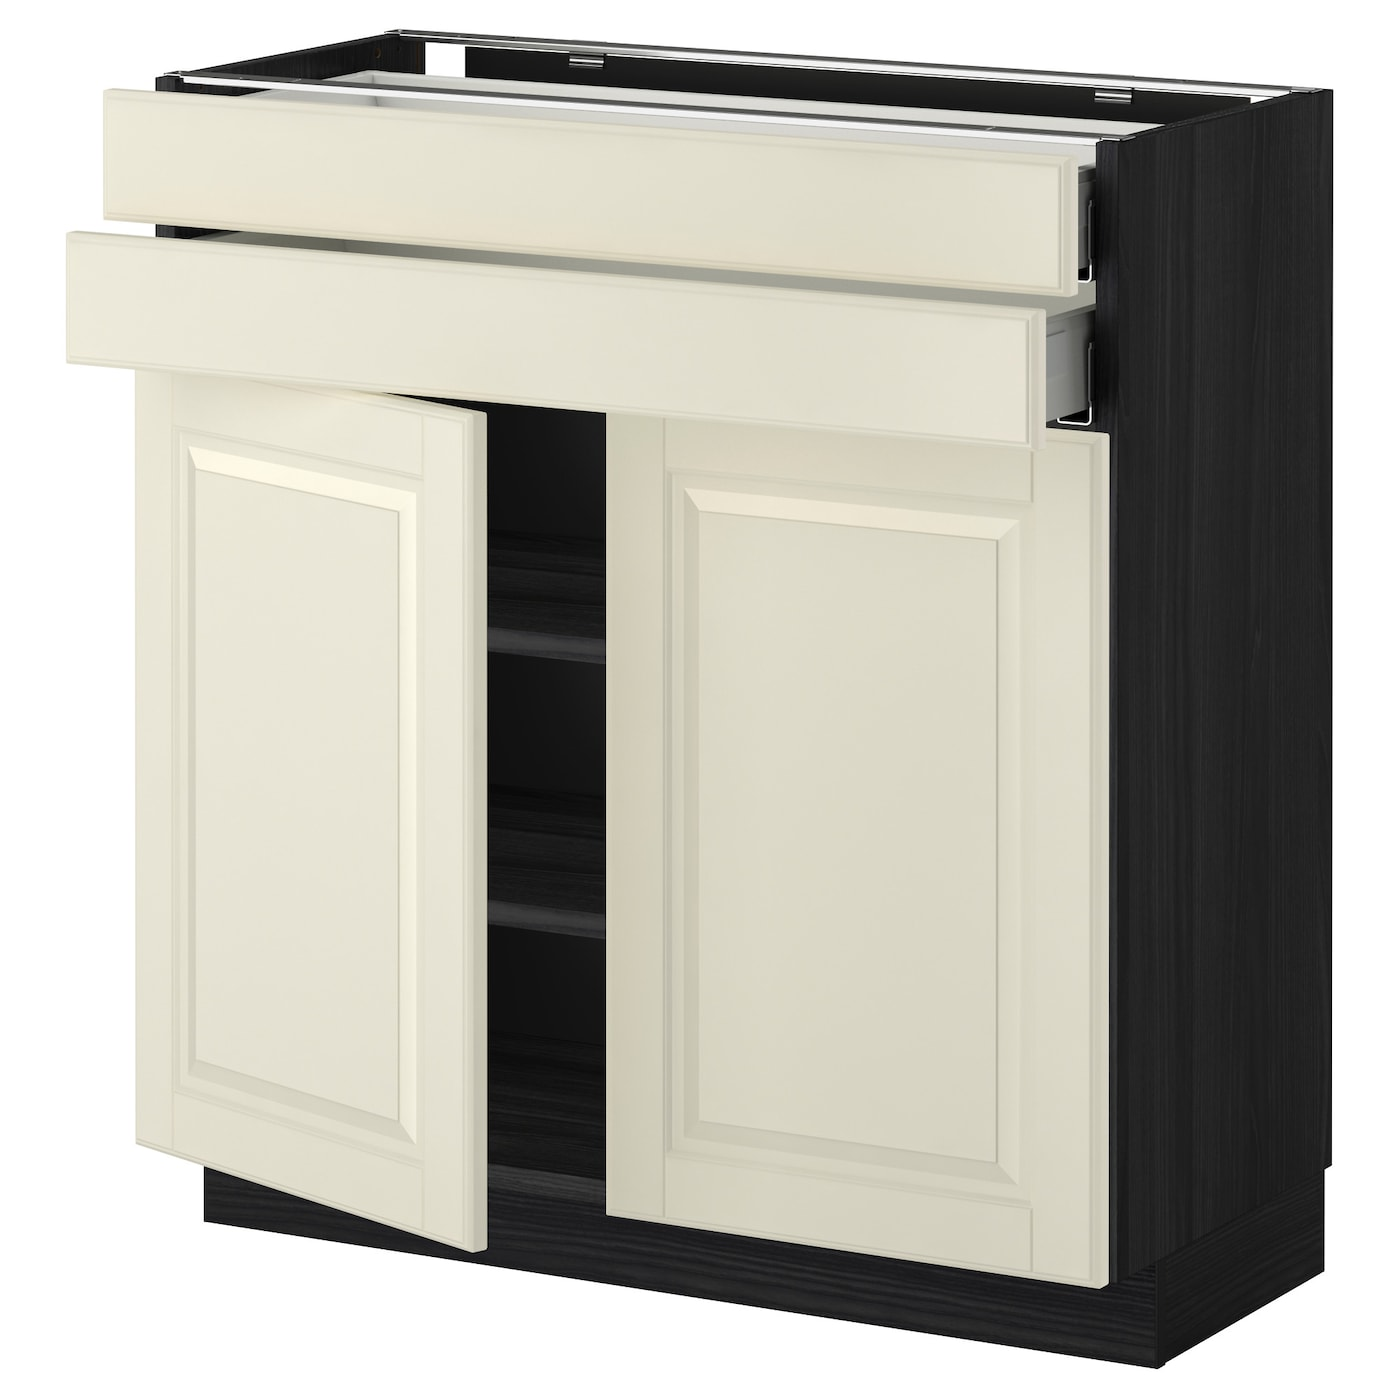 Metod Maximera Base Cabinet W 2 Doors 2 Drawers Black Bodbyn Off White 80x37 Cm Ikea